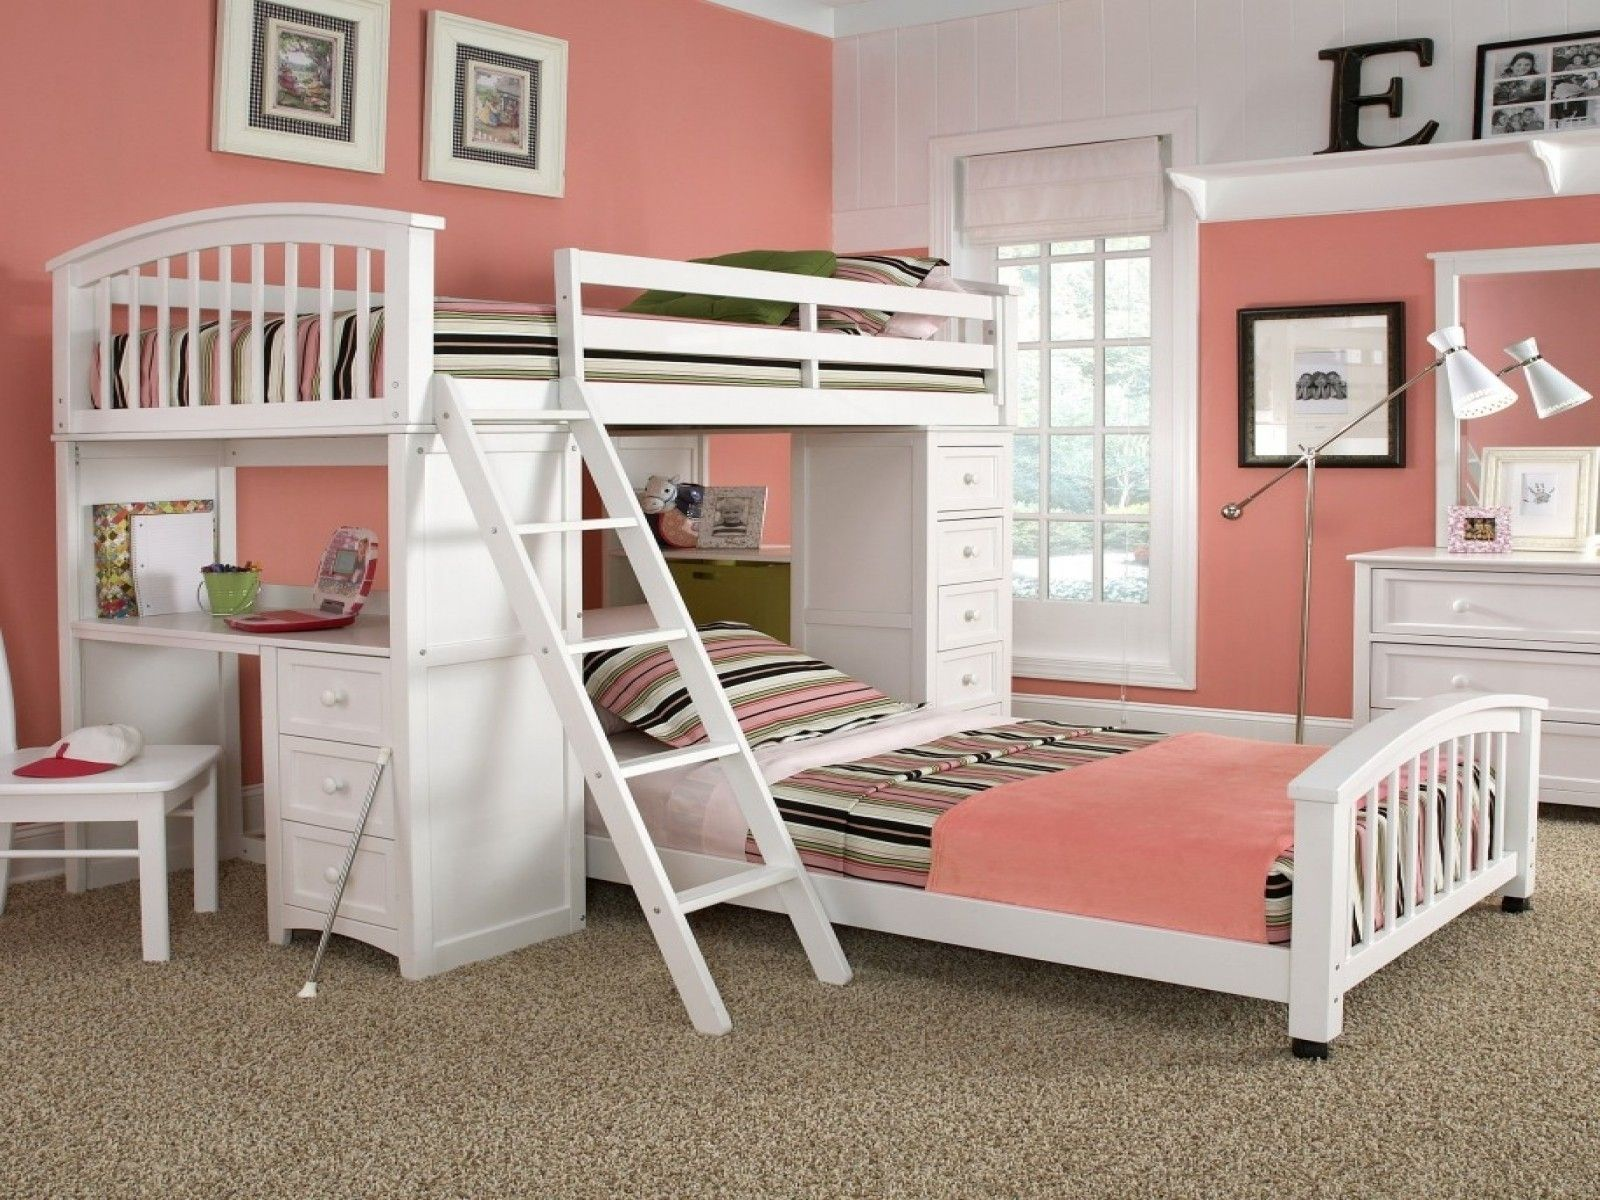 Loft bed ideas for small spaces  Pin by Maleana on Kids styles in   Pinterest  Bedrooms House